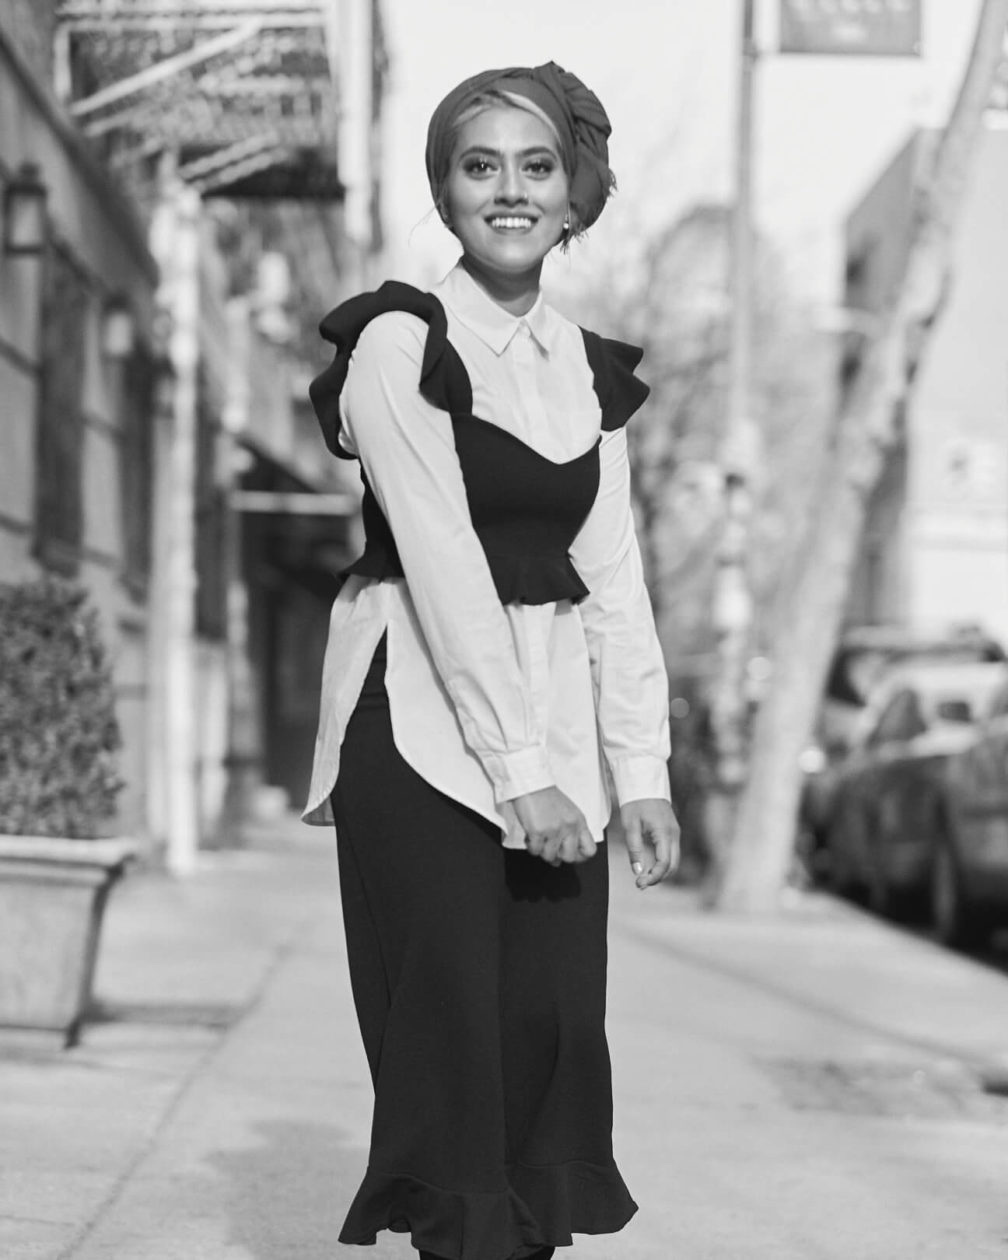 Fuji X Pro2 with xf 56mm f1.2 - Black and White Portrait Desi Fashion Fusion Photography in Washington Square Park, New York with model Syeda